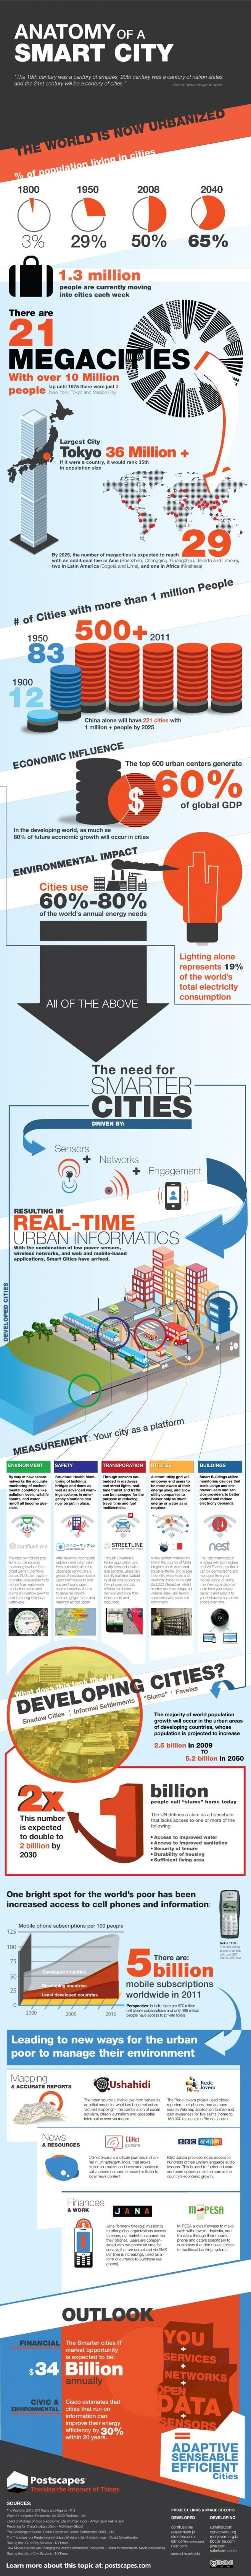 The anatomy of #Smart_city #Infographic